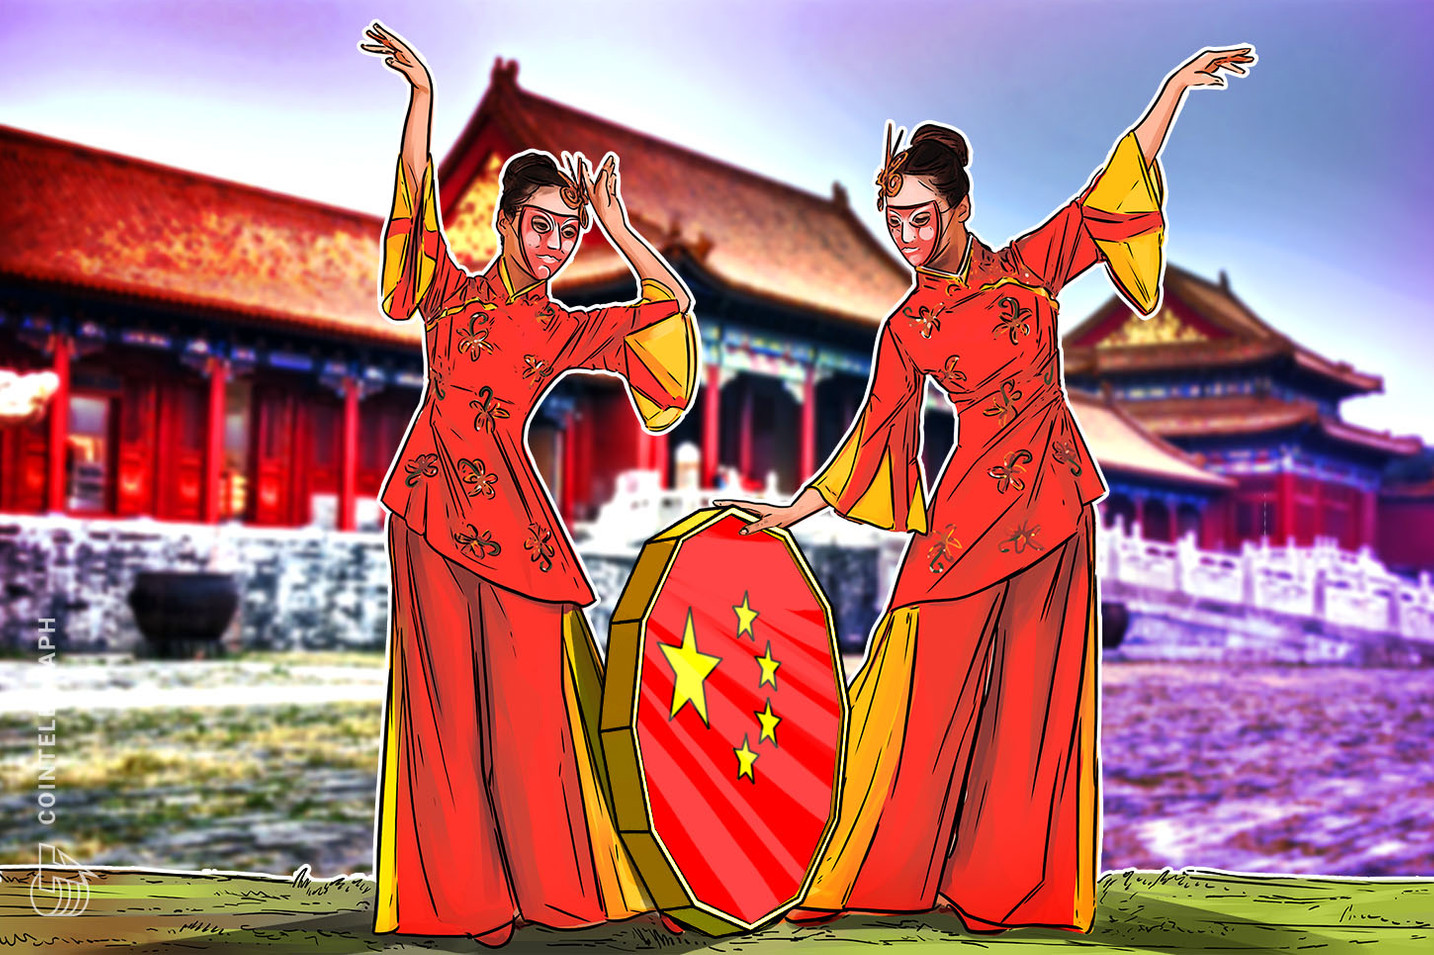 China's National Crypto Similar to Libra, Central Bank Official Says